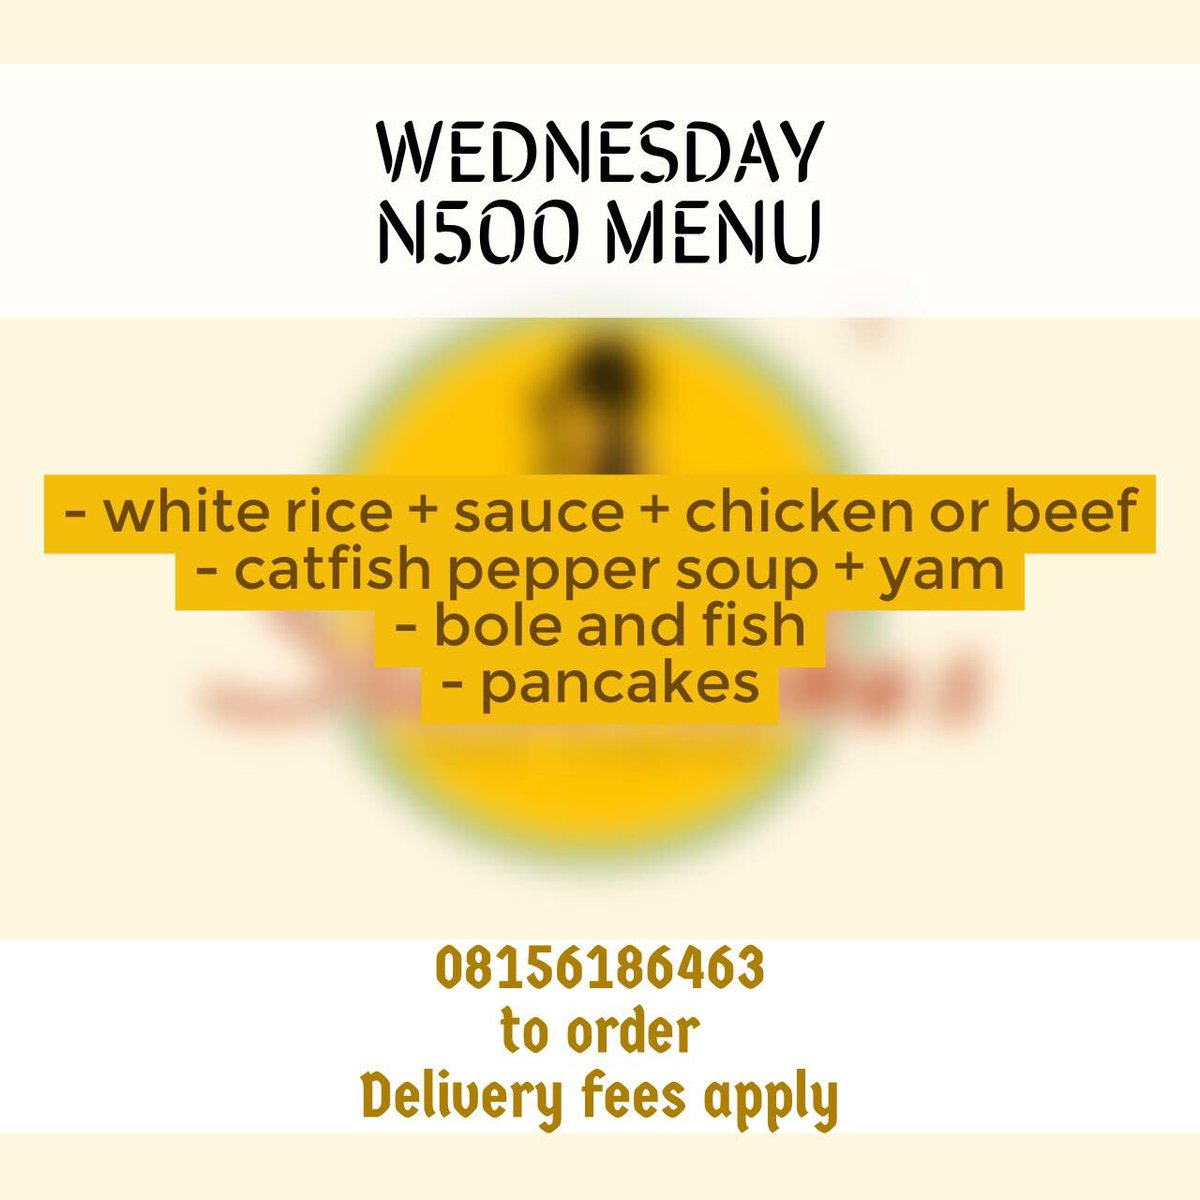 Wednesday Menu  Don&#39;t be left out .  Call 08156186463 to place your order .  Order line closes 9am Wednesday morning. #abujaonly <br>http://pic.twitter.com/B8LyaN3t9E